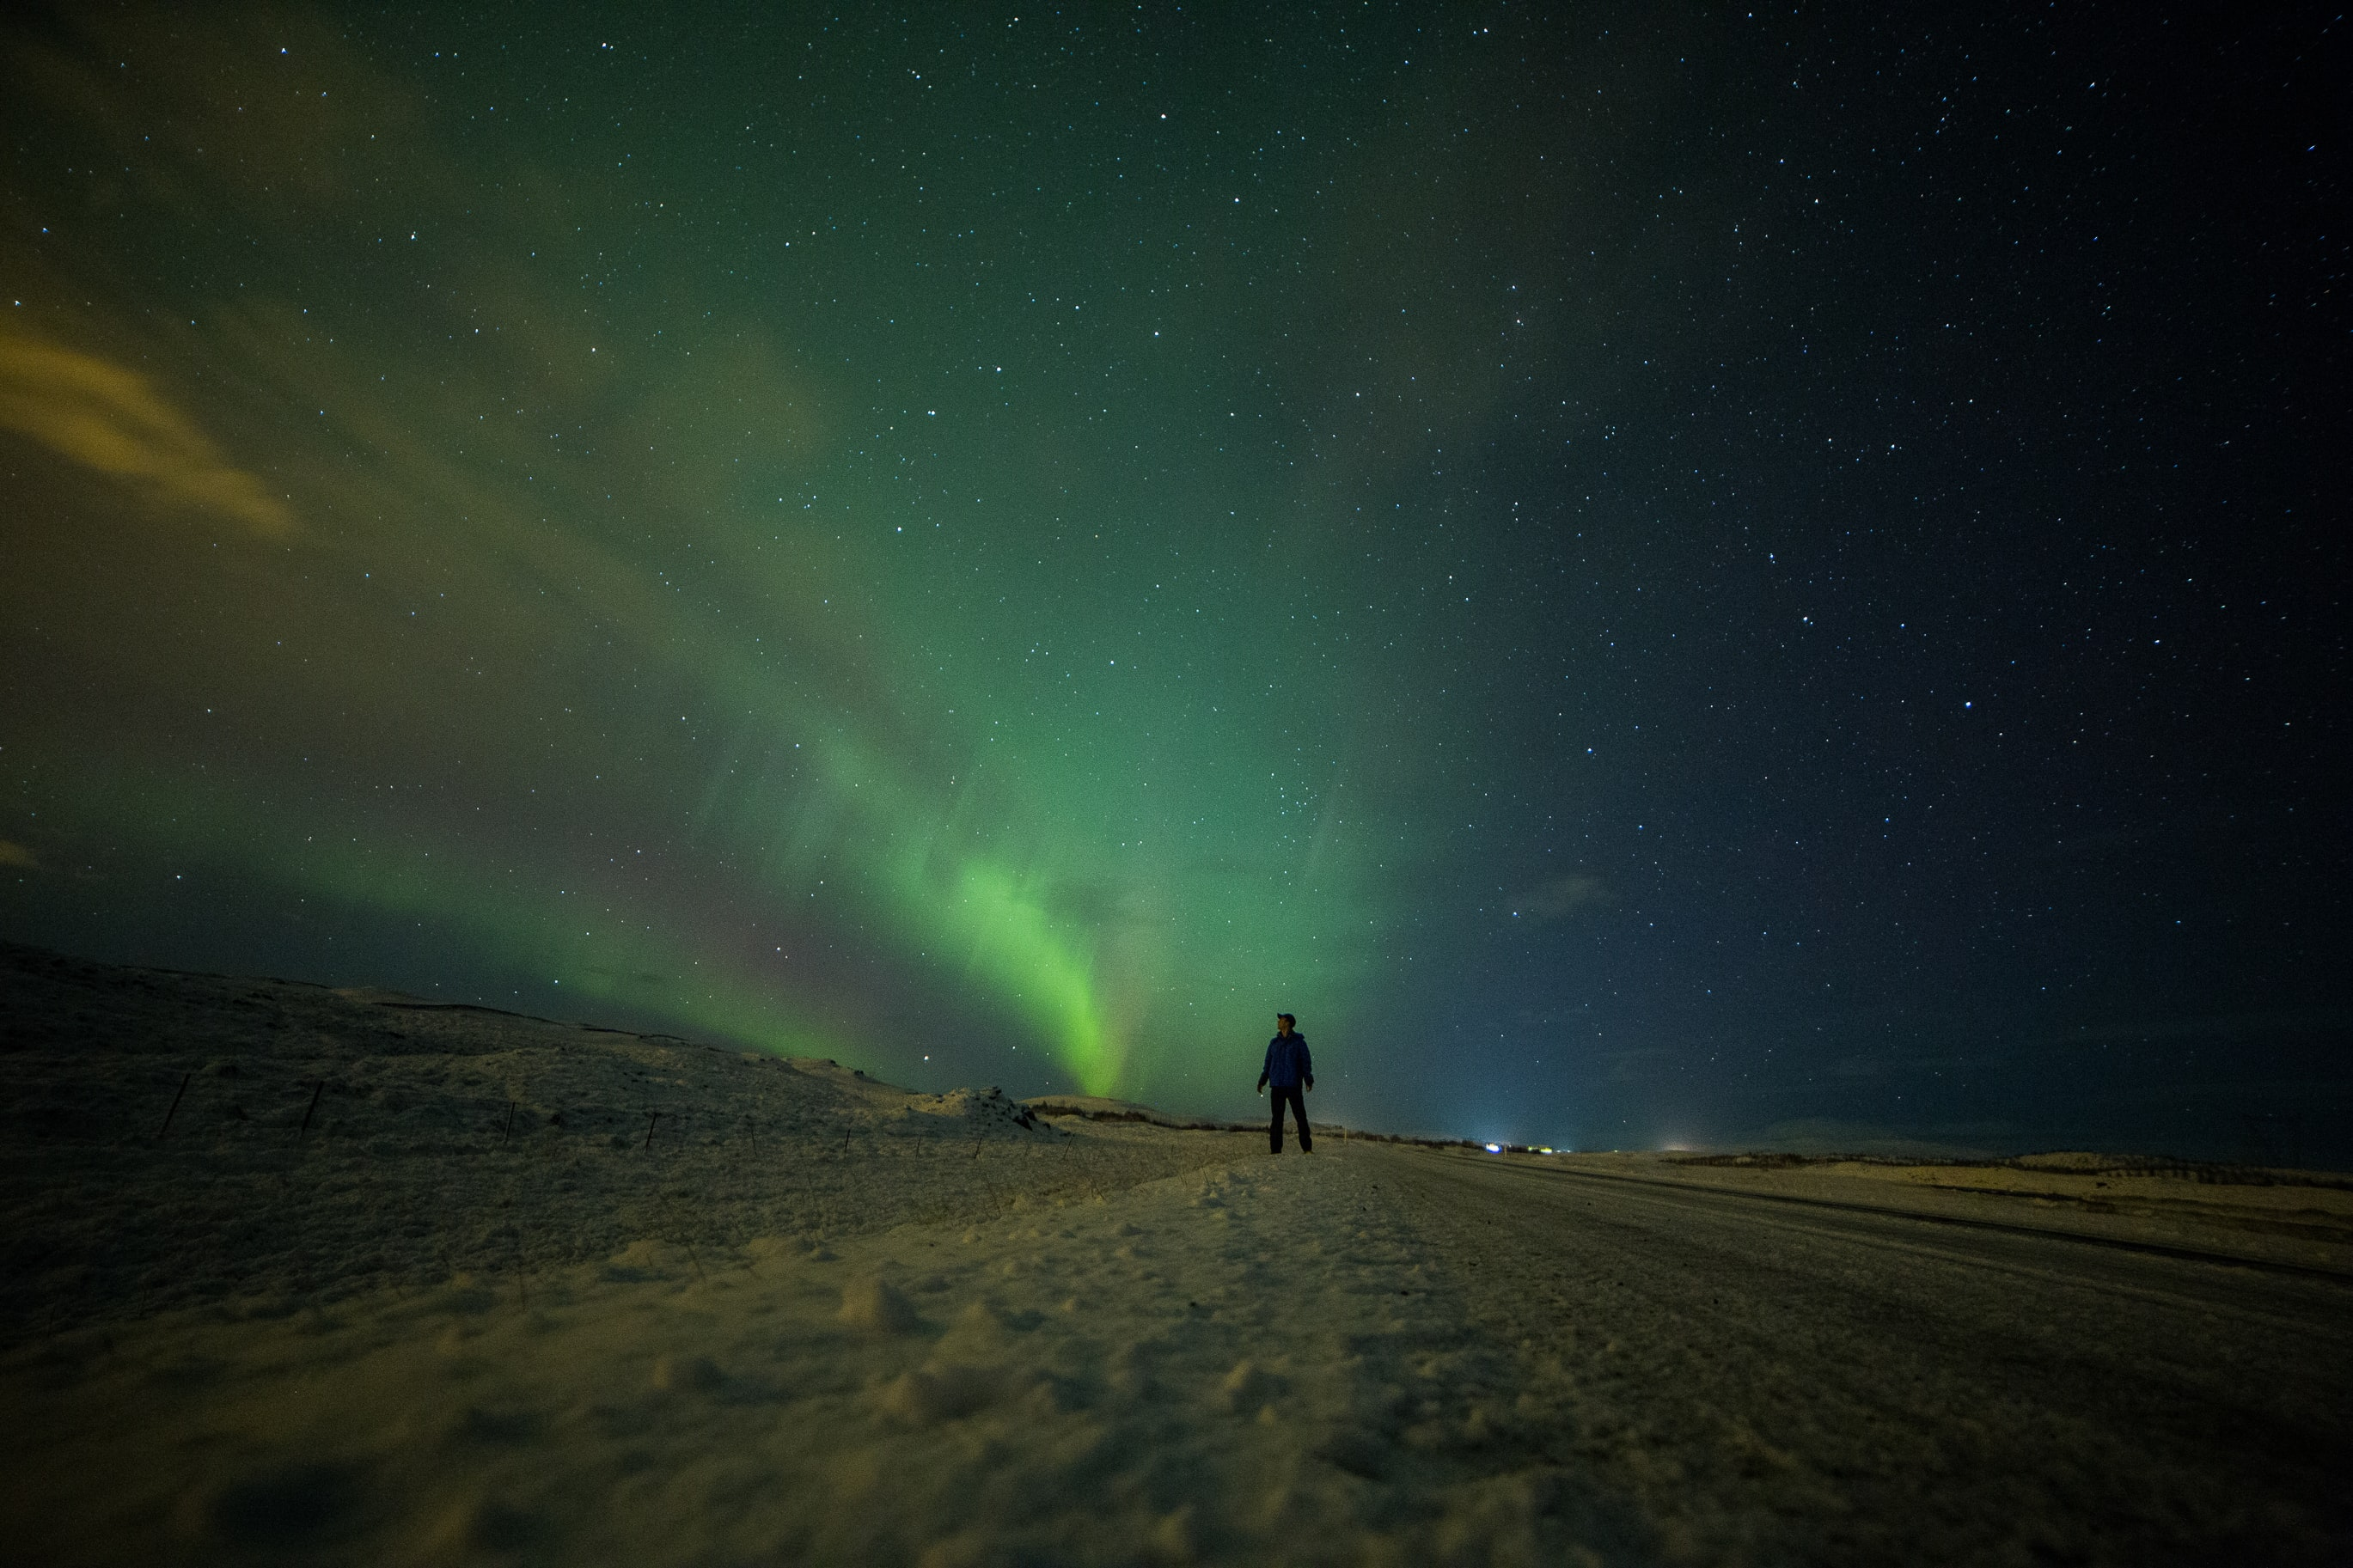 A person watching the vibrant green Northern Lights display.